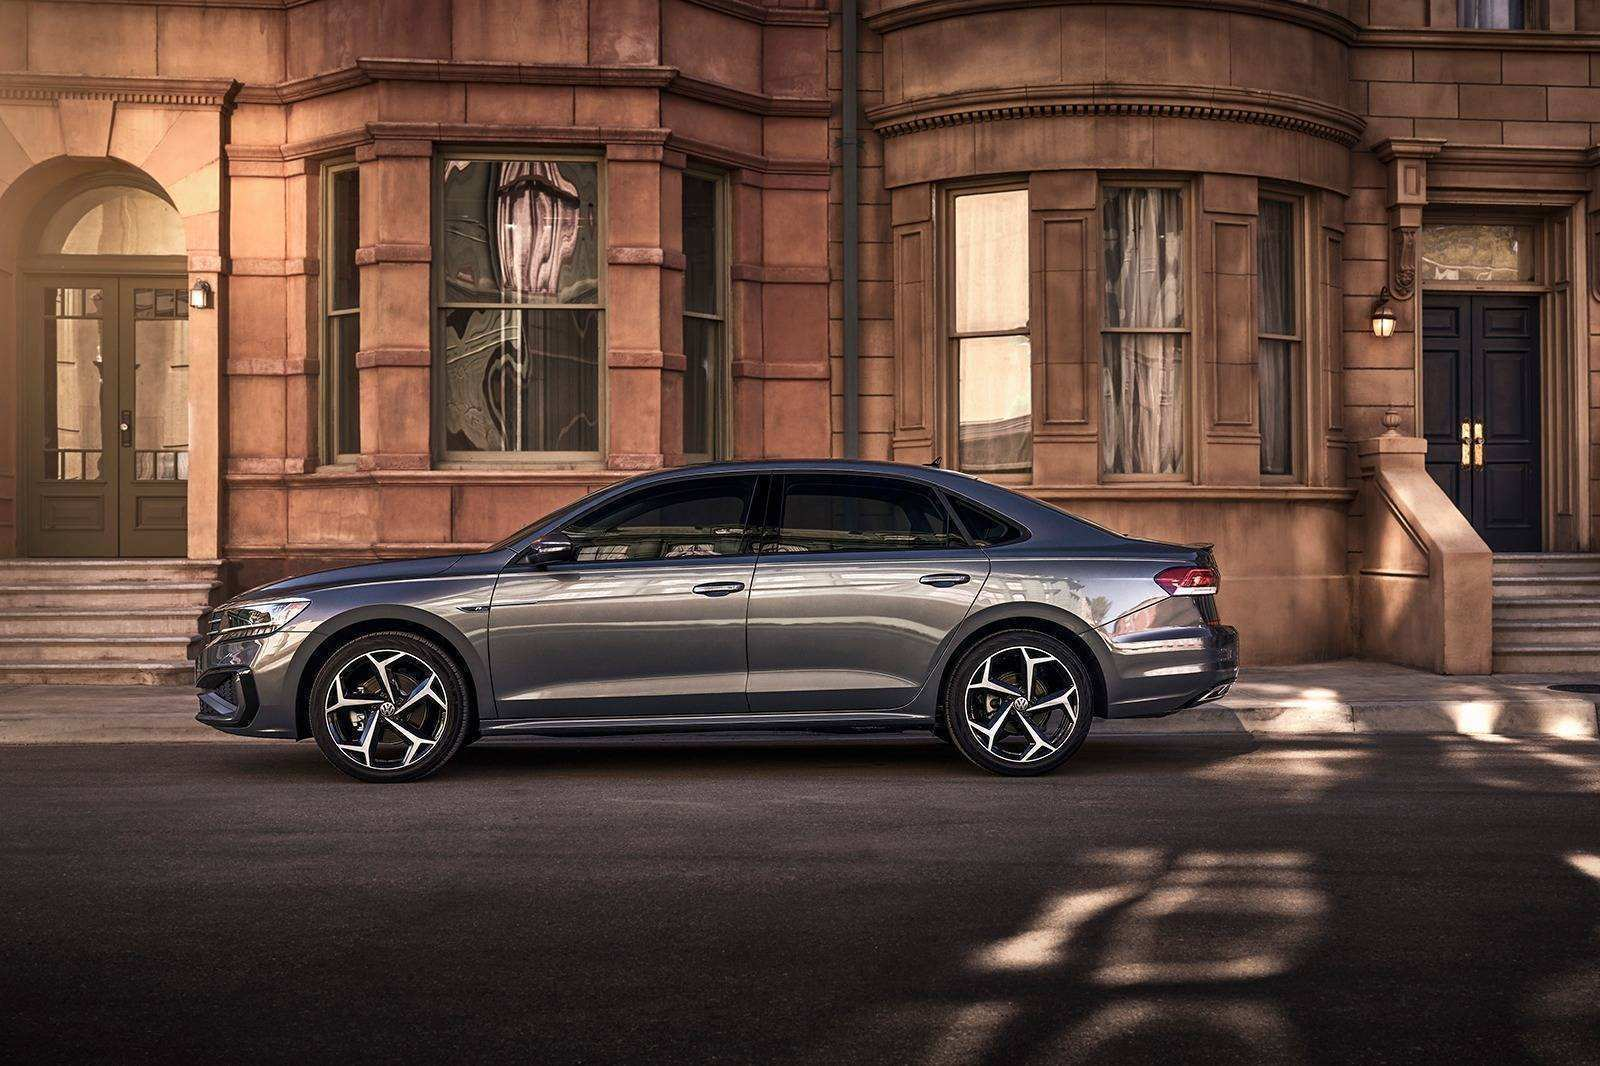 84 A 2020 Vw Passat Release Date And Concept